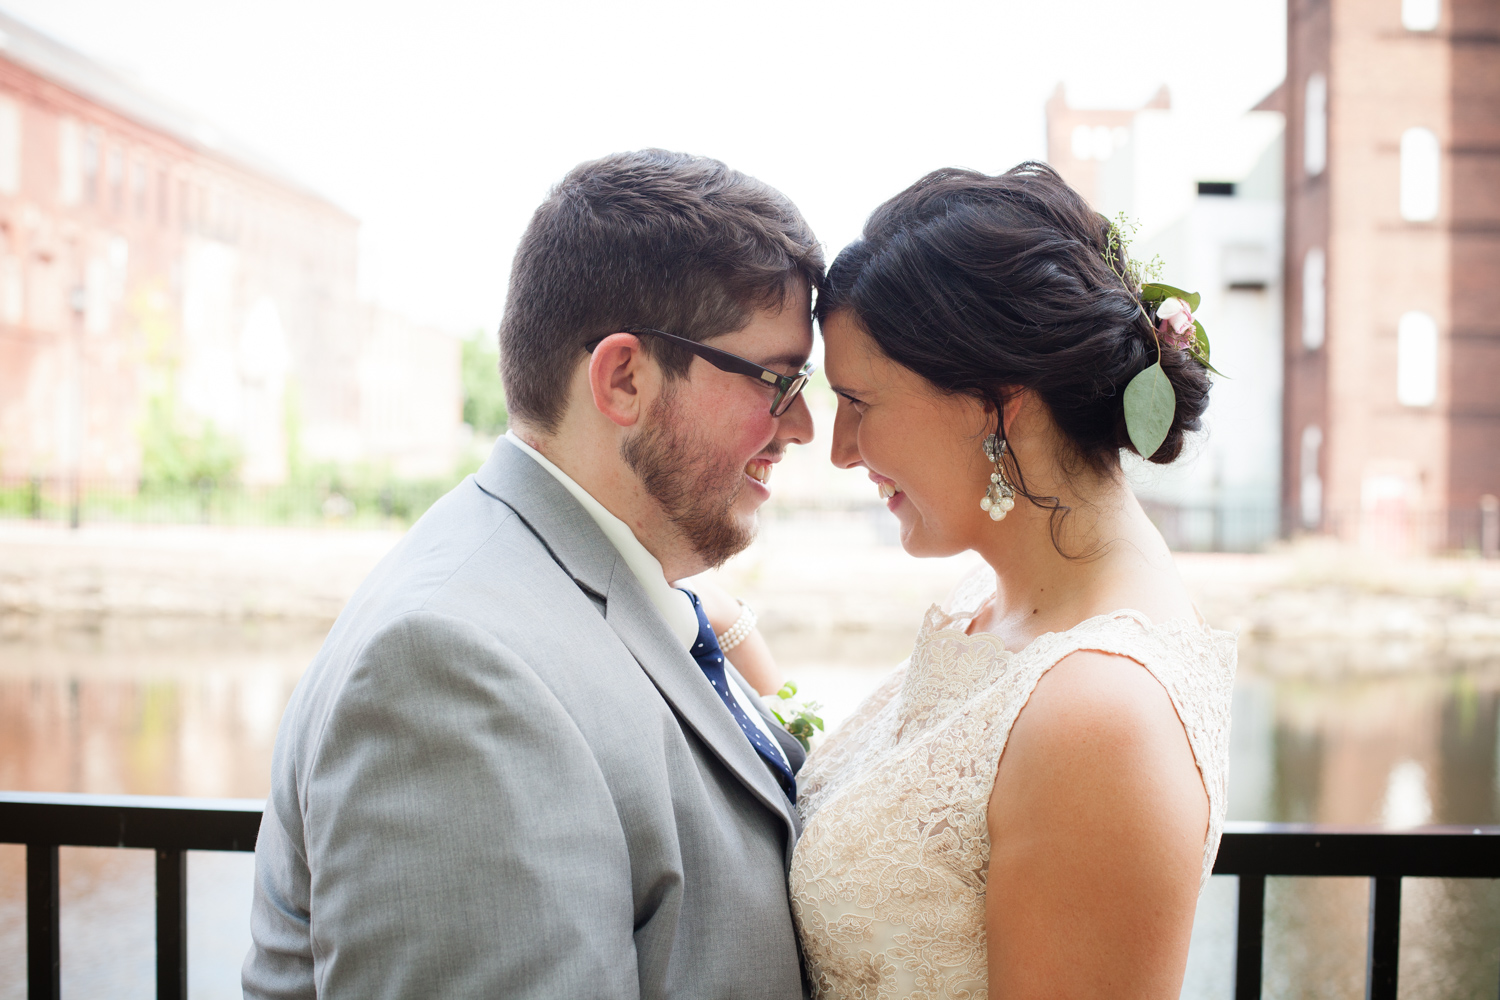 cute couple mill 1 at open square wedding jp langlands photography